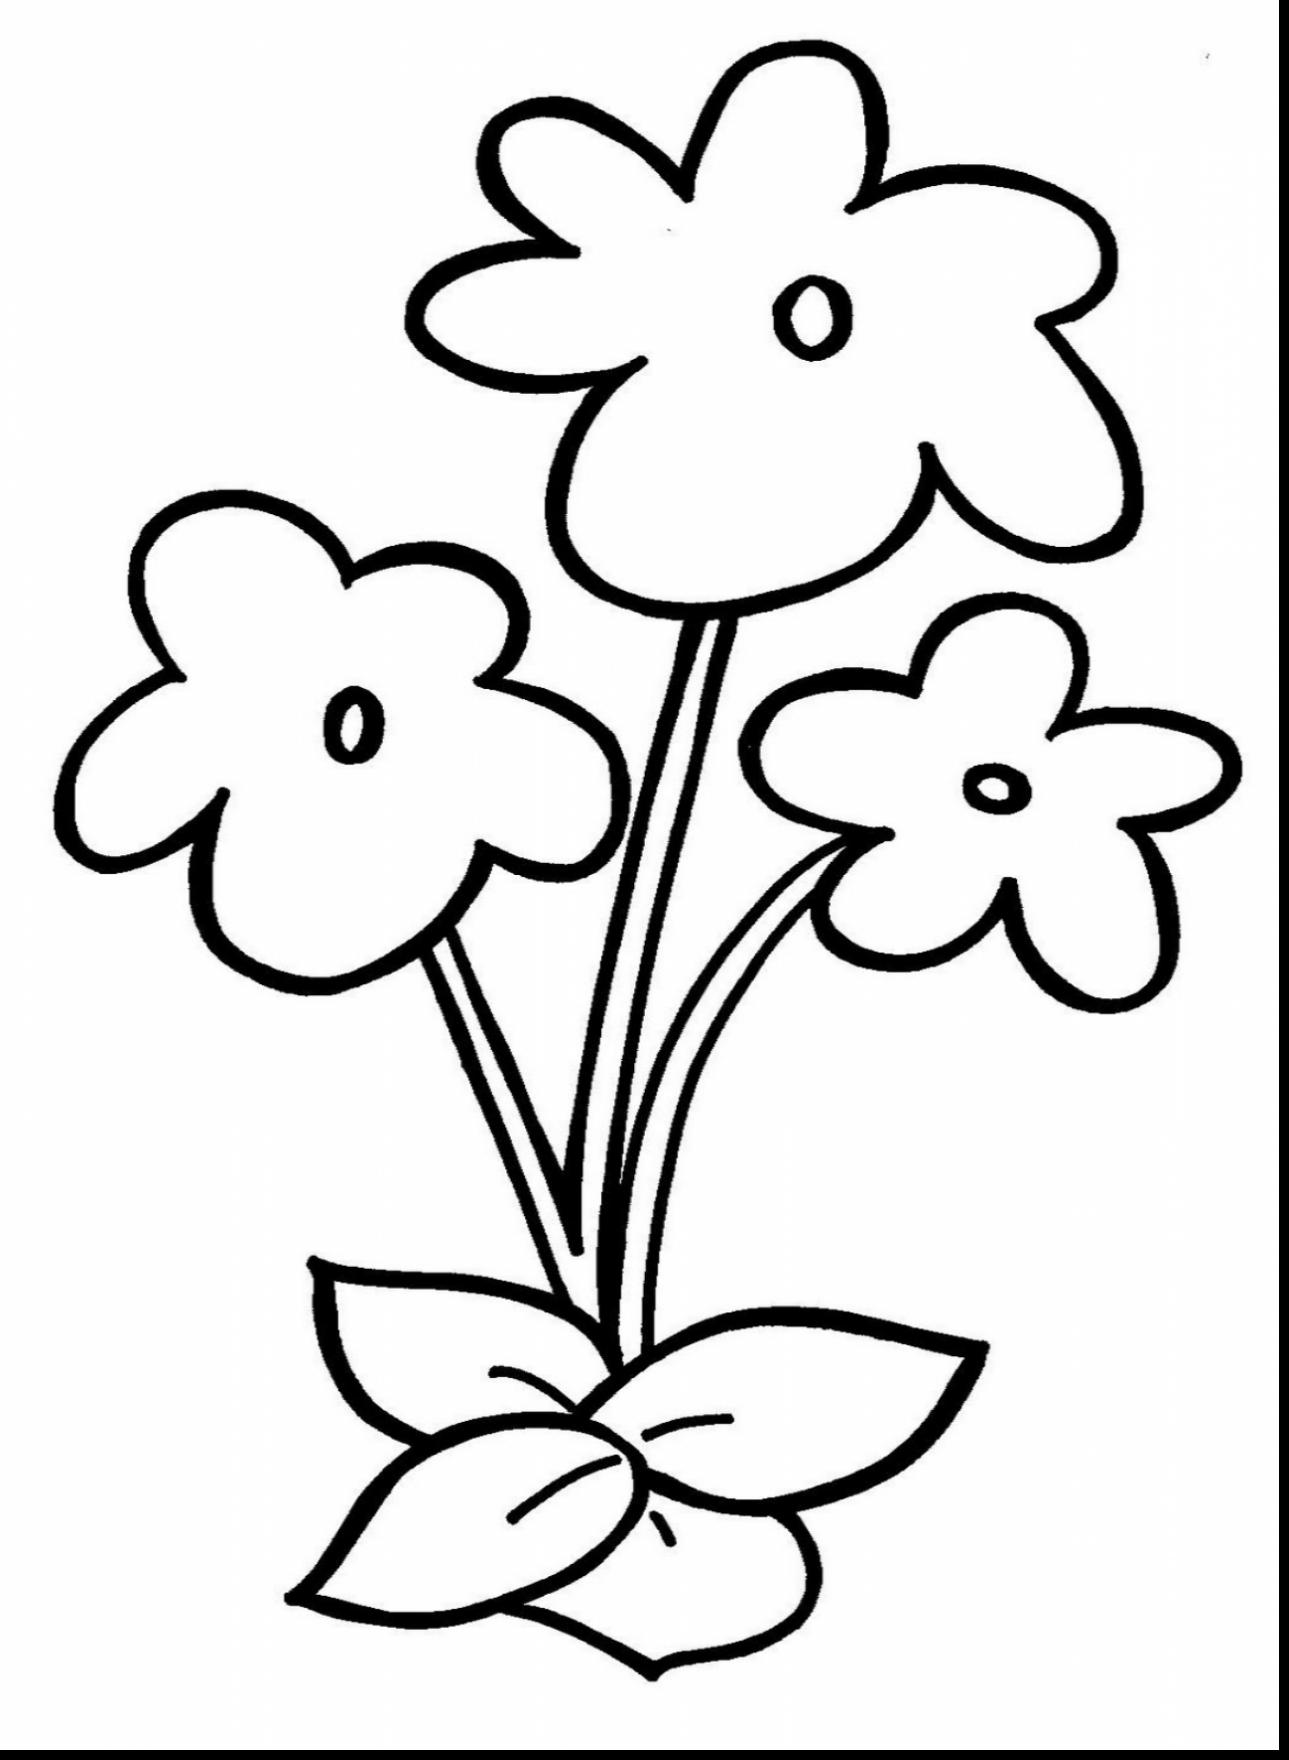 Preschool Coloring Pages Pdf at GetColorings.com | Free ...